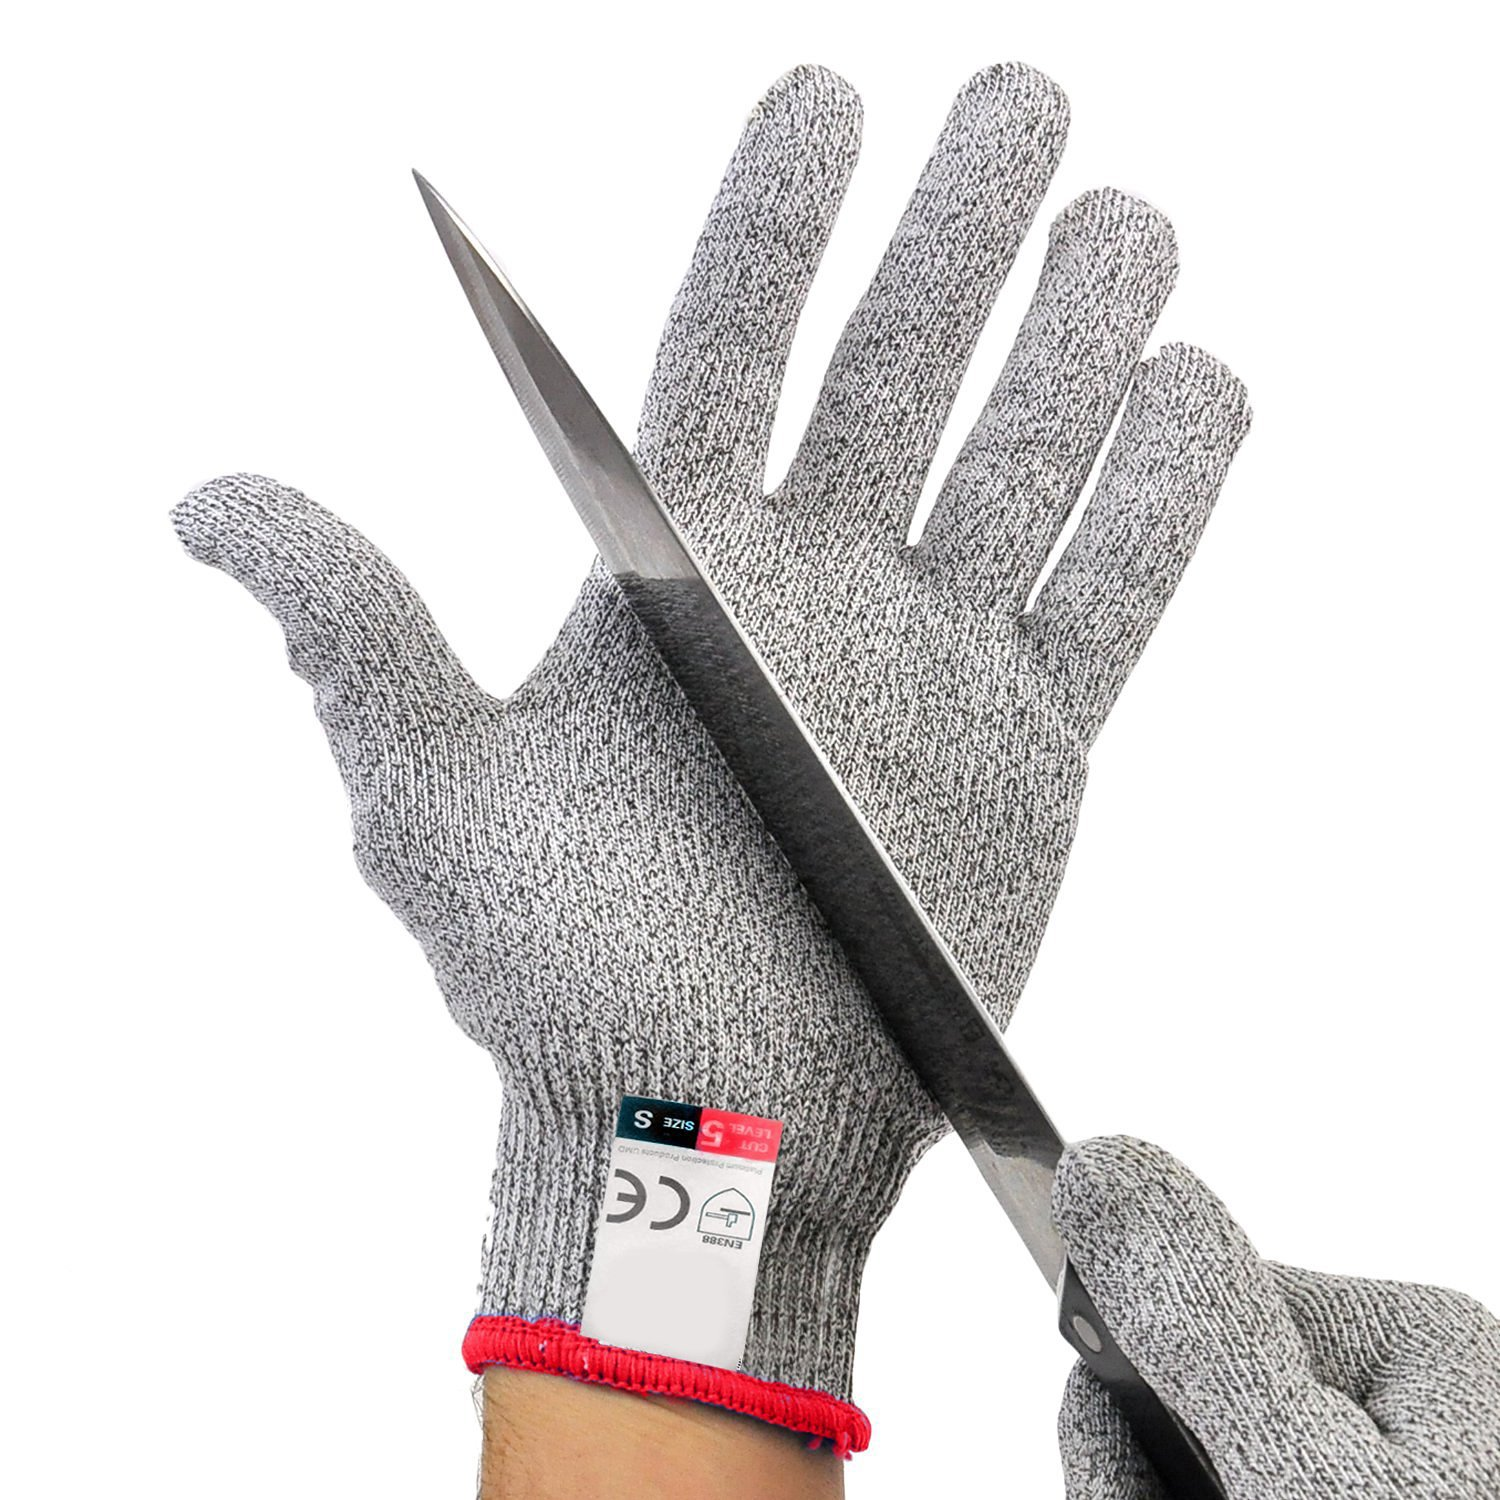 amazoncom platinum oyster glove no cut resistant high  - amazoncom platinum oyster glove no cut resistant high performance level protection food grade all sizes perfect gift for that chef culinary cncrouter